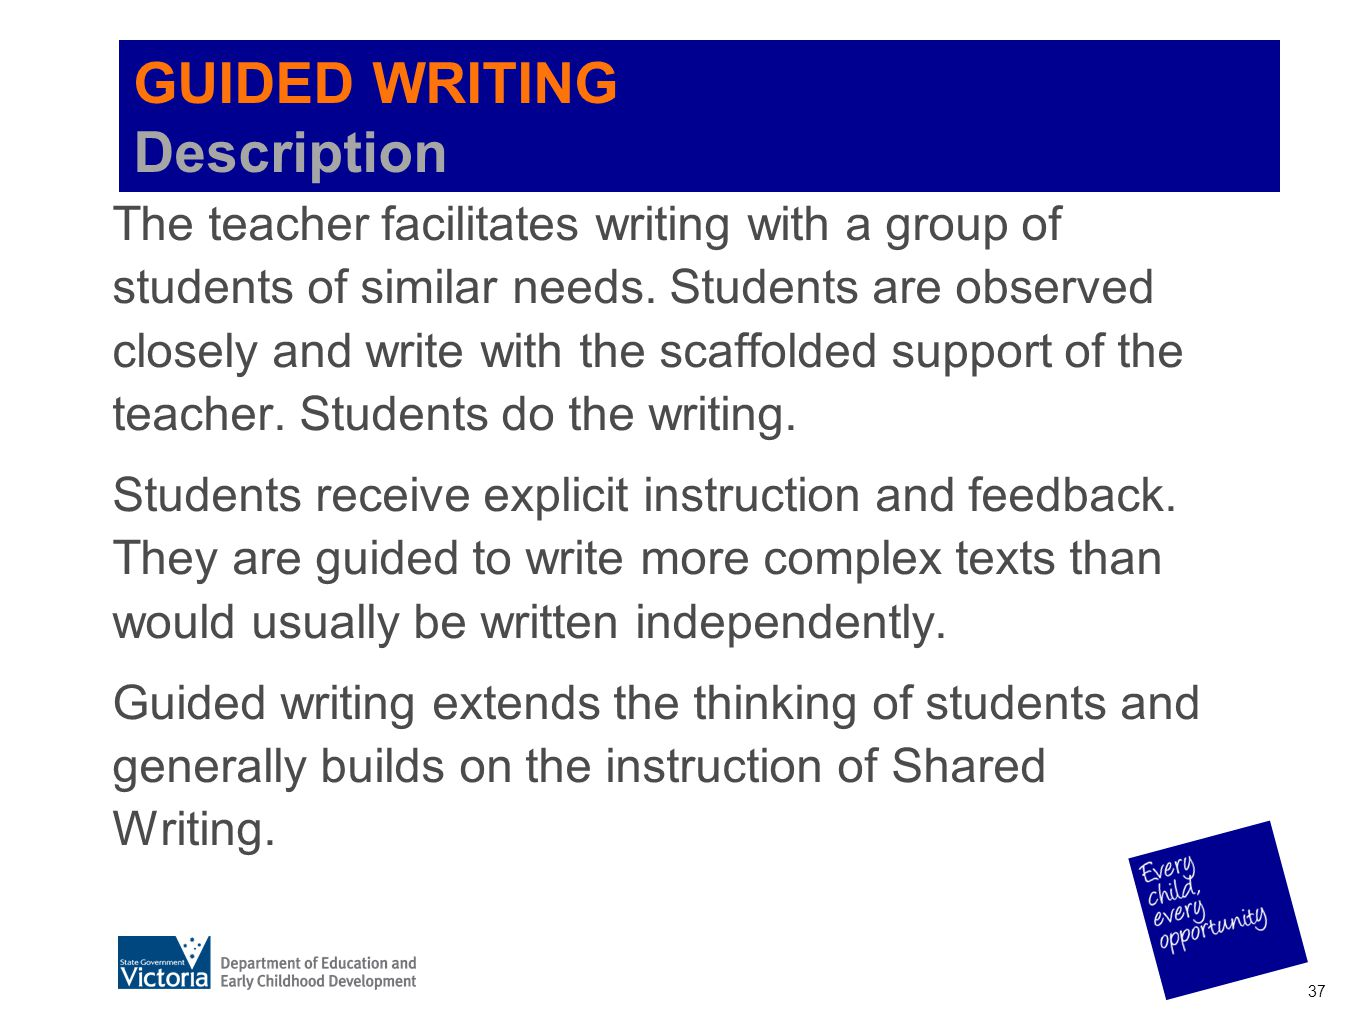 GUIDED WRITING Description